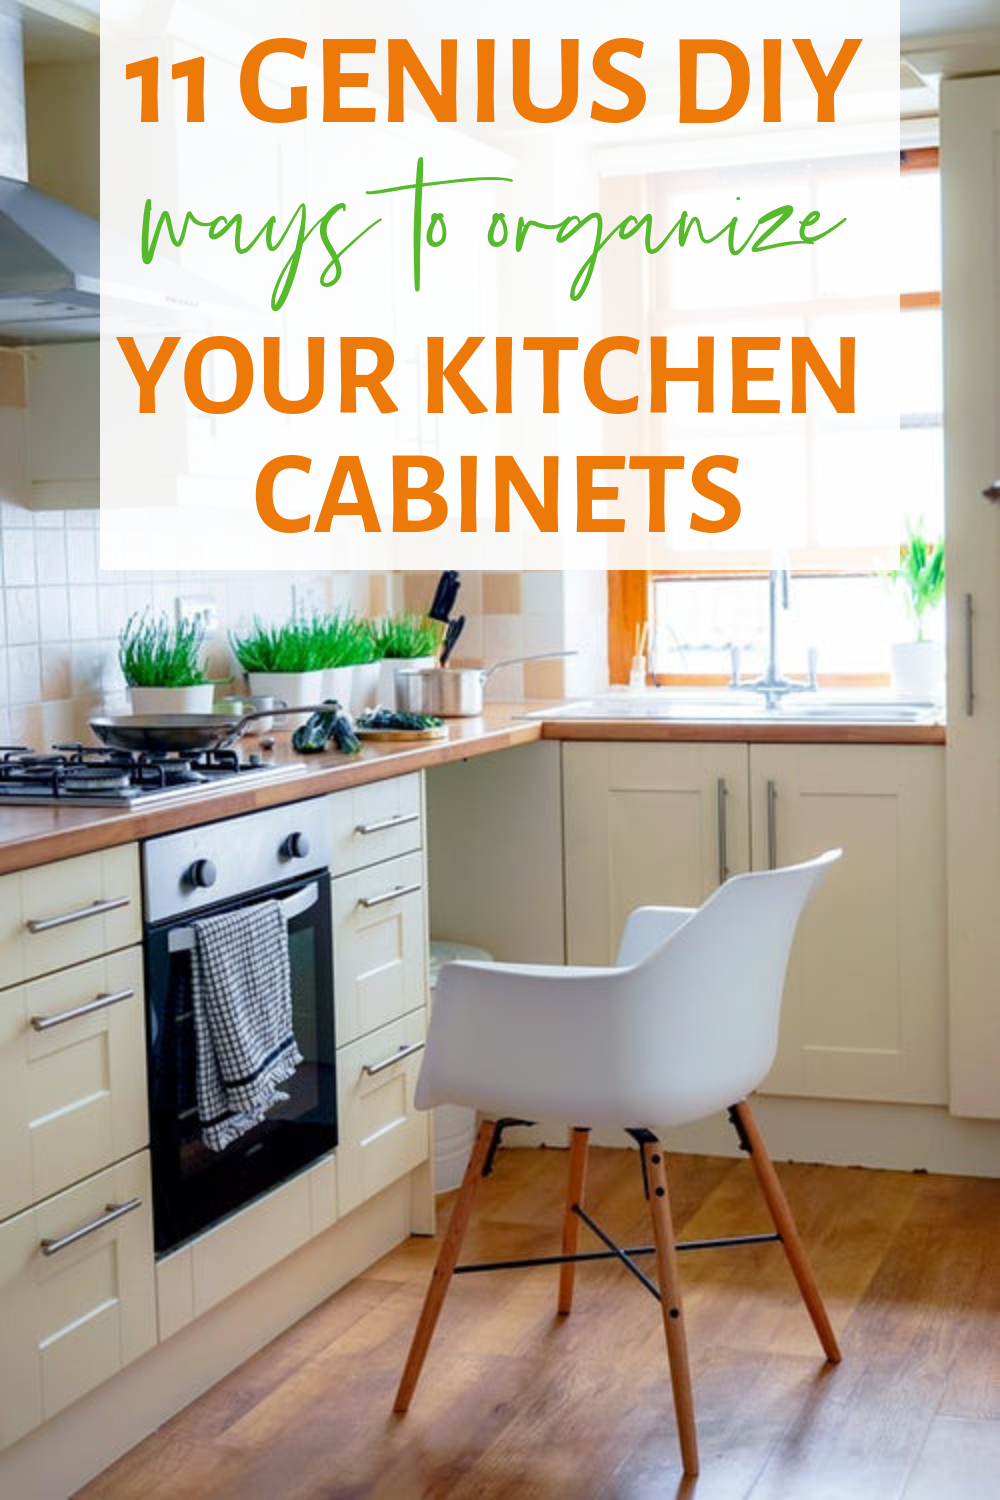 11 genius diy ways to organize your kitchen cabinets with images kitchen organization tidy on kitchen organization diy id=90521